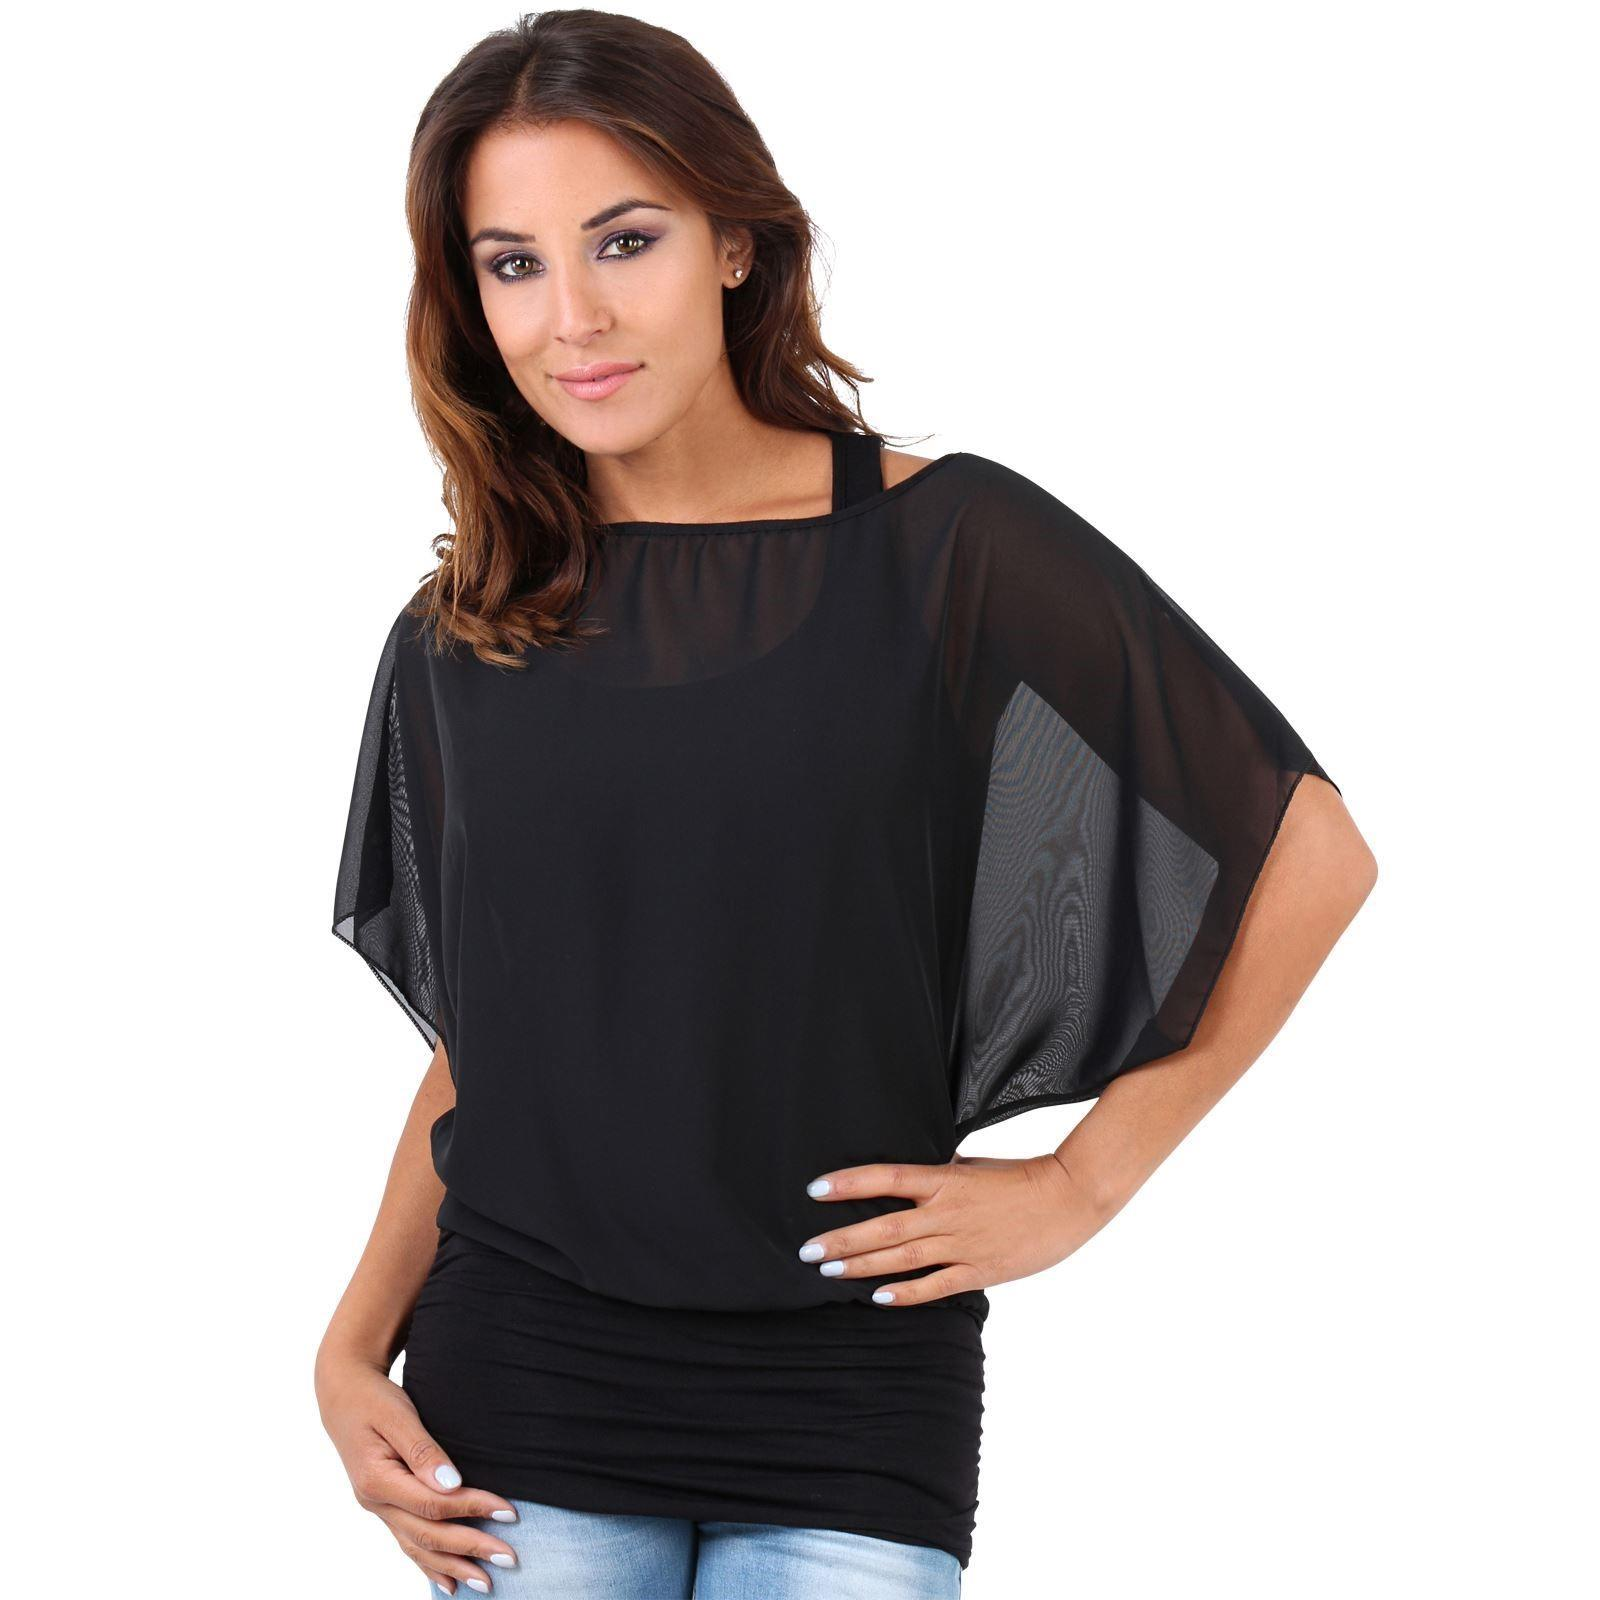 Womens-Scoop-Neck-Blouse-Baggy-Batwing-T-Shirt-Top-Ladies-Oversized-Chiffon-2in1 thumbnail 7